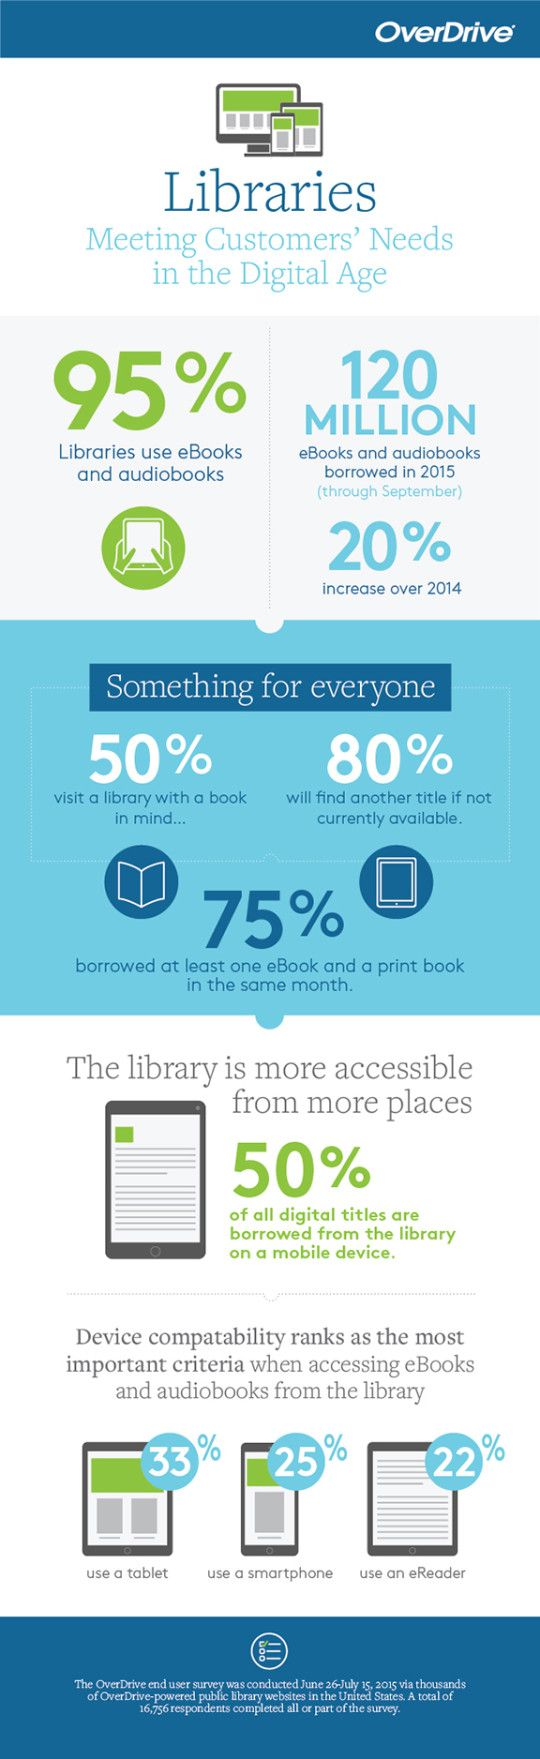 345 Best Images About Library Stuff On Pinterest  Library Of Congress,  Library Classification And Librarian Humor